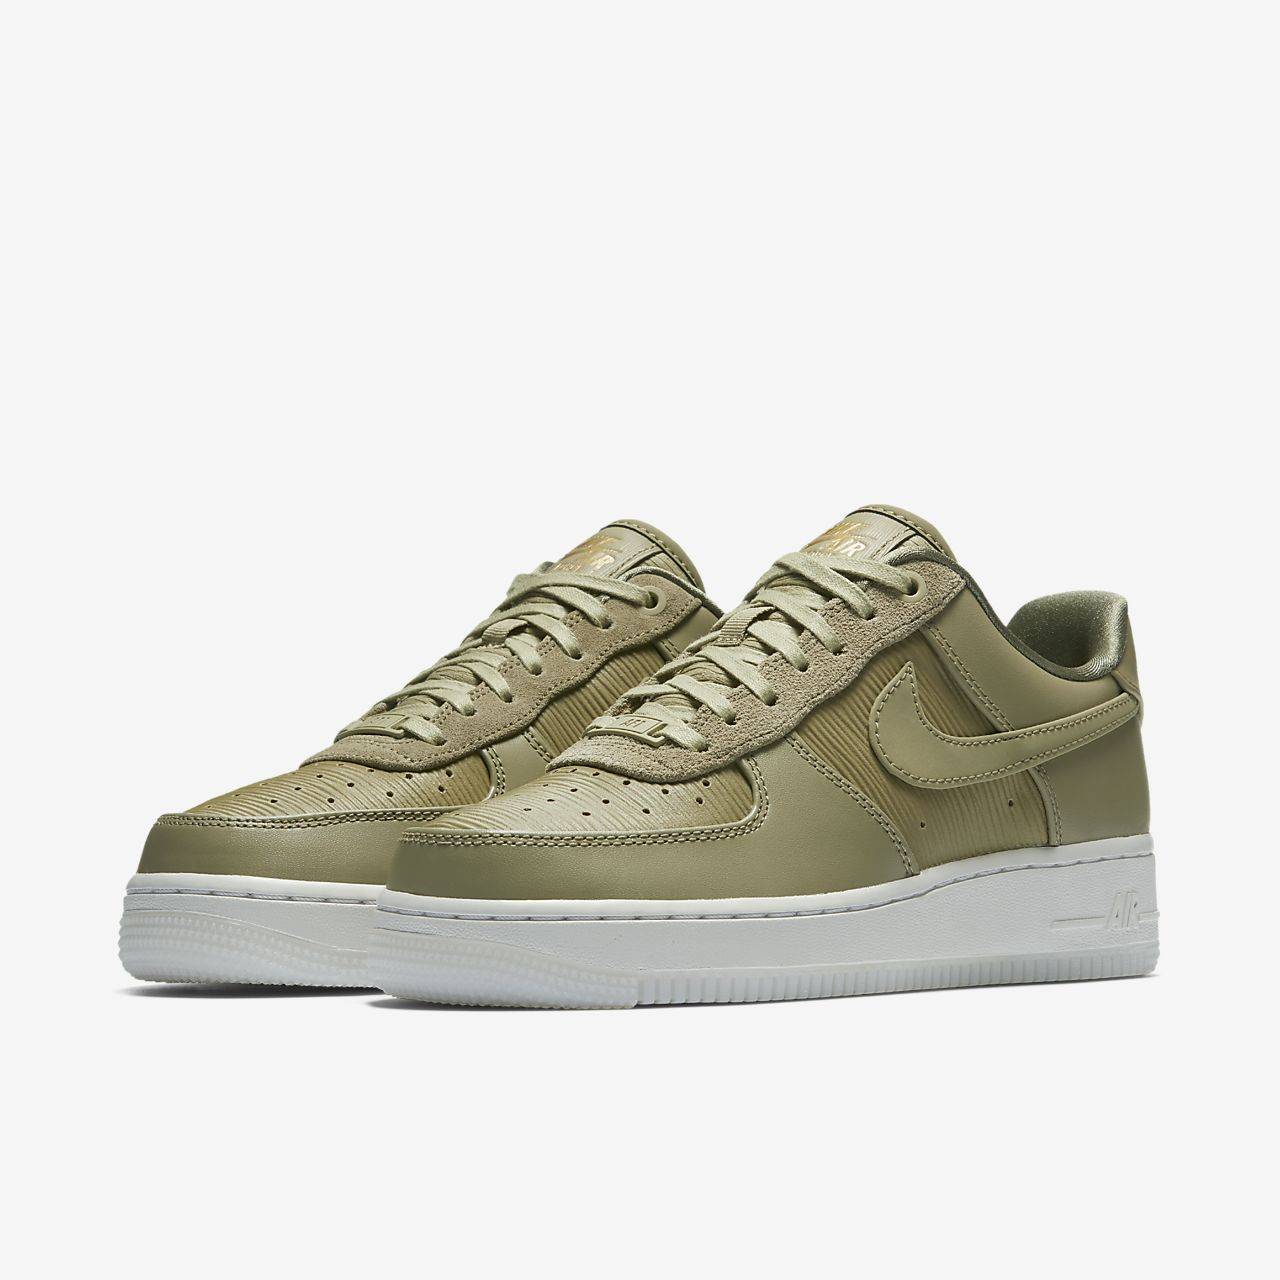 Nike AIR FORCE 1 '07 LX SNEAKERS d8ya75f